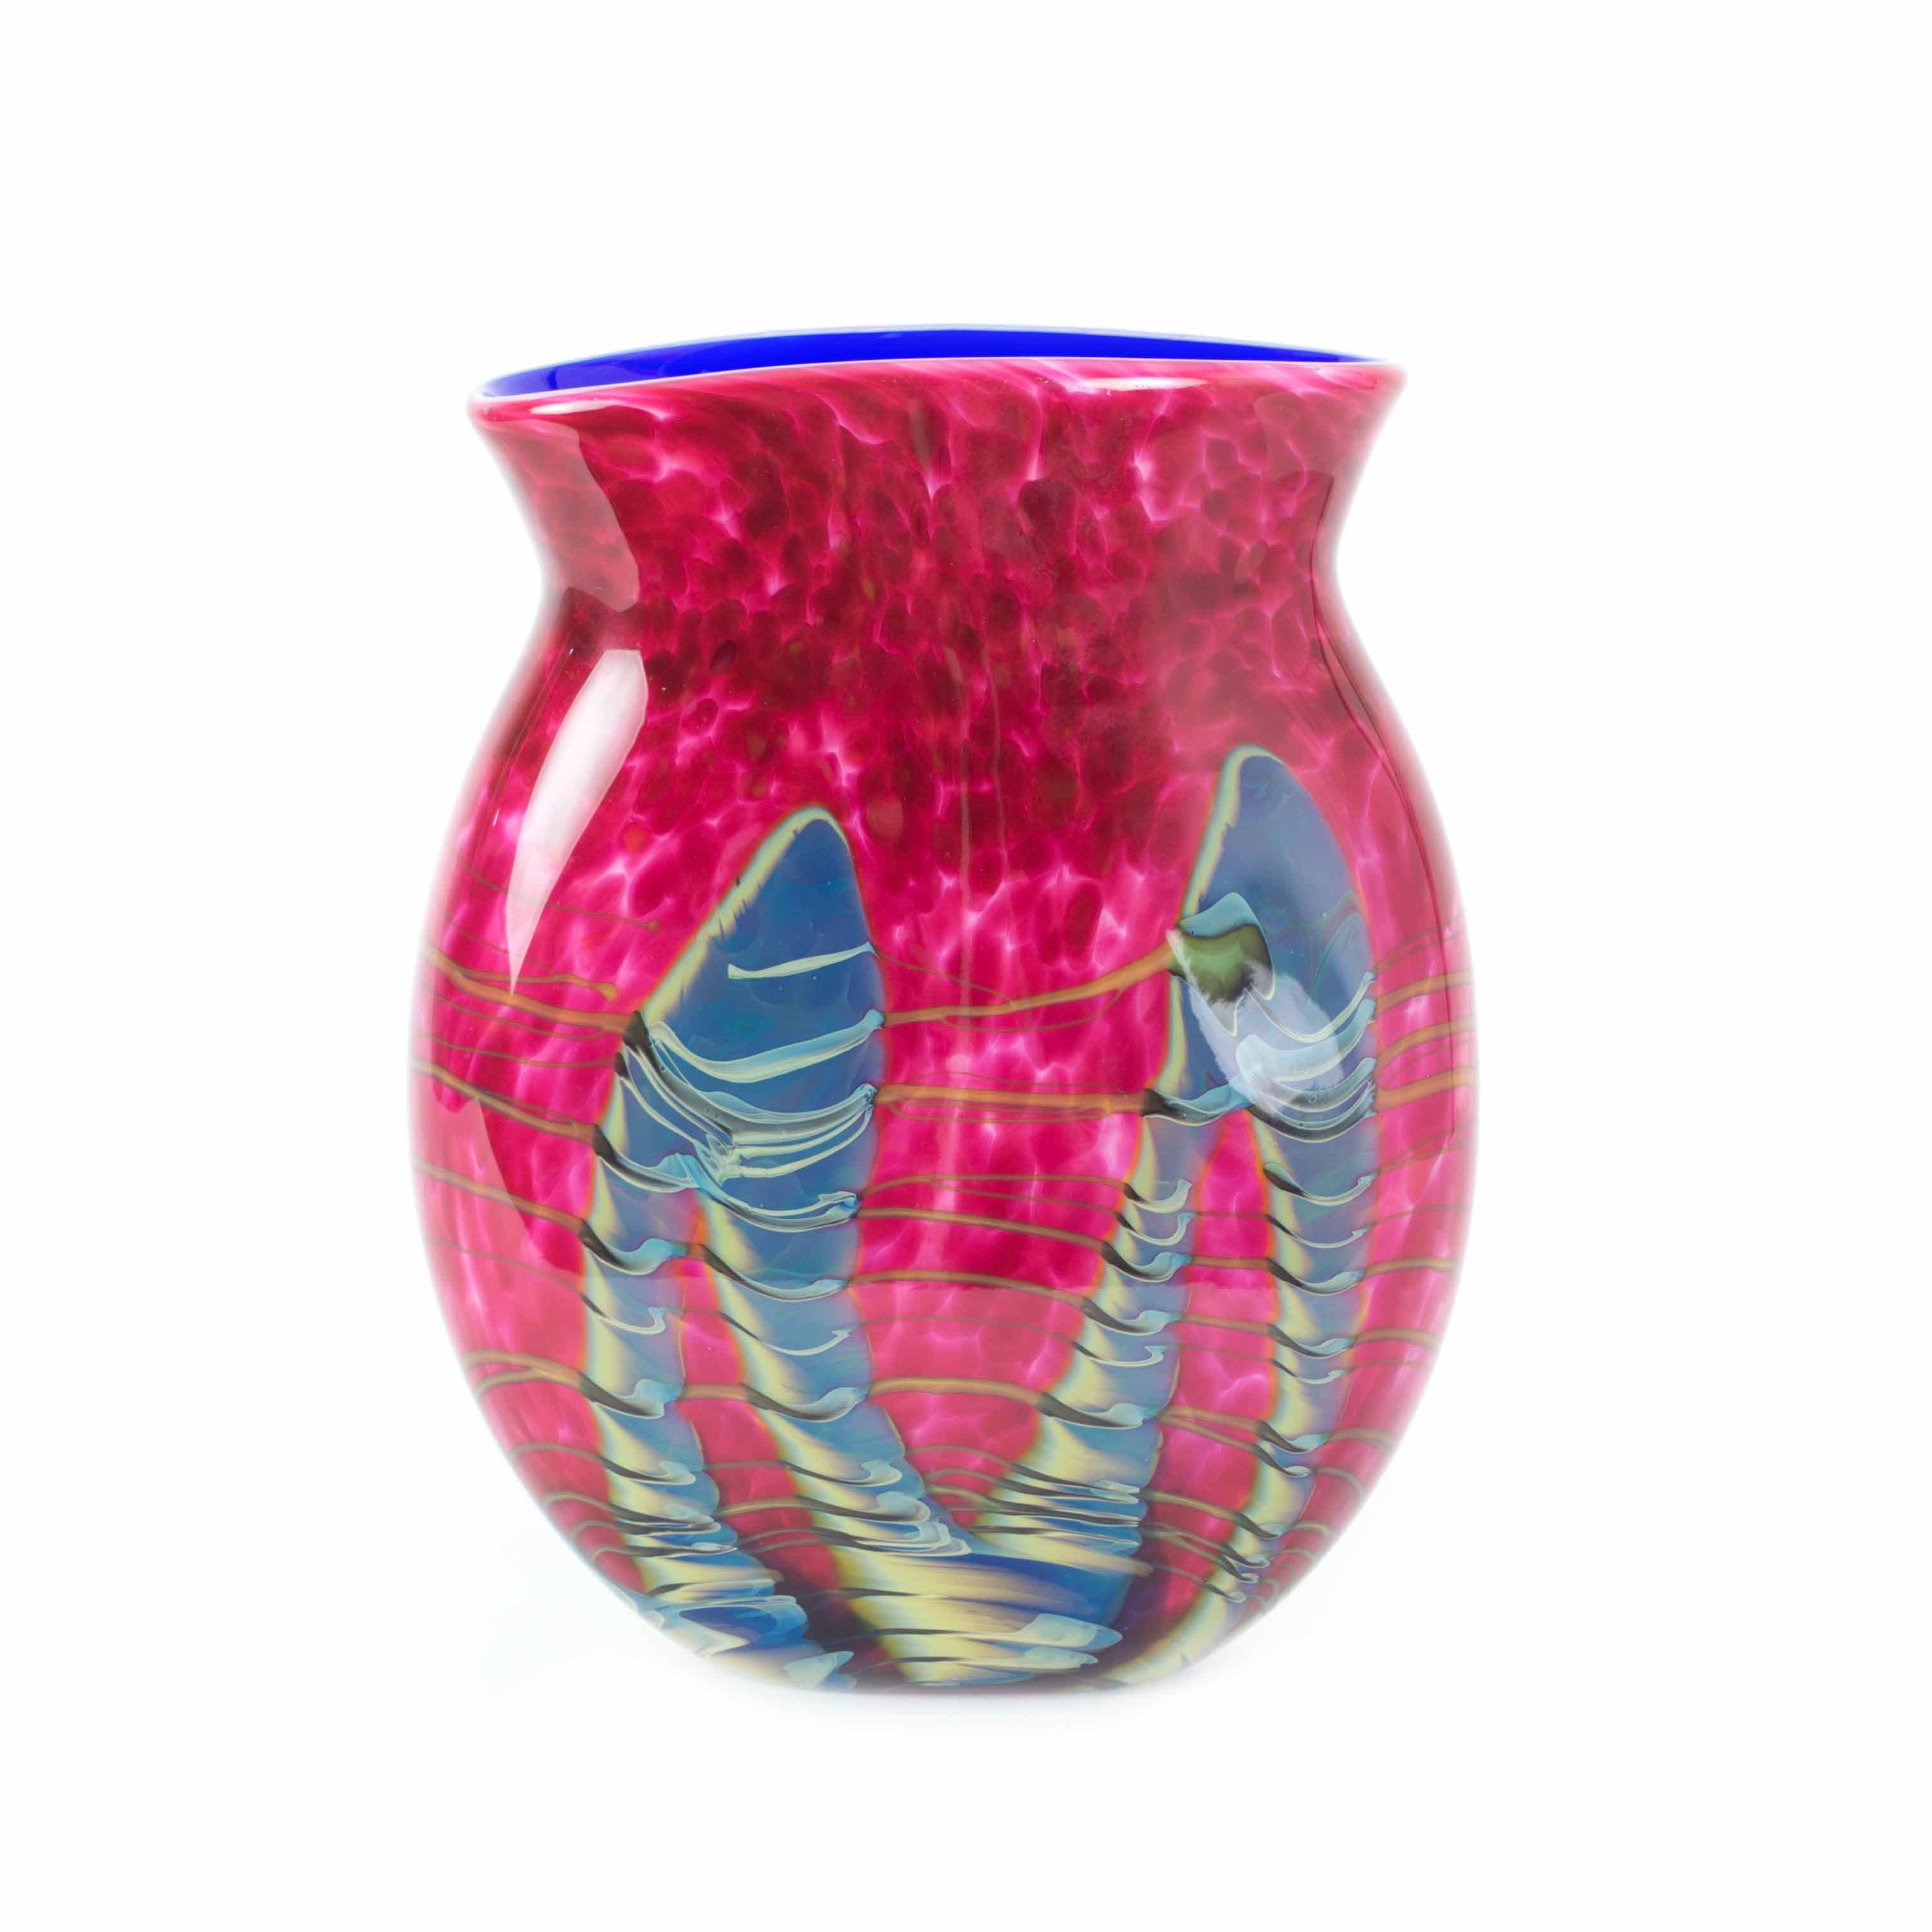 vibrant handmade art glass vase